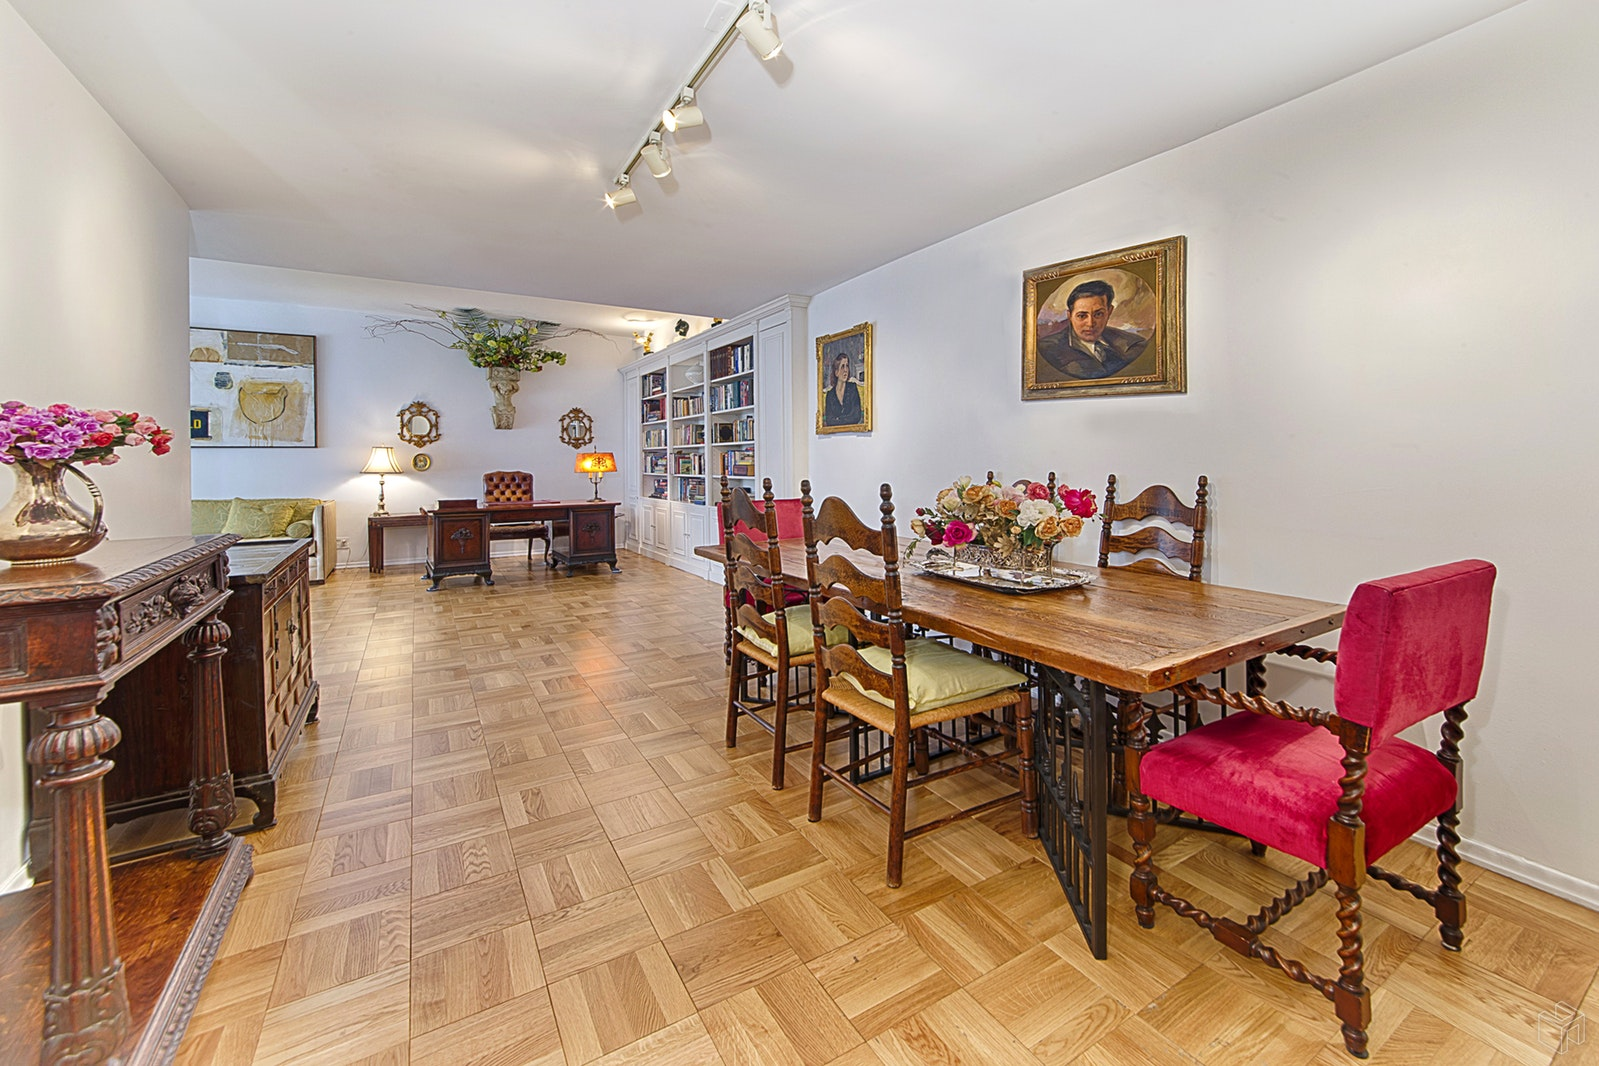 201 EAST 79TH STREET 18H, Upper East Side, $700,000, Web #: 18685253